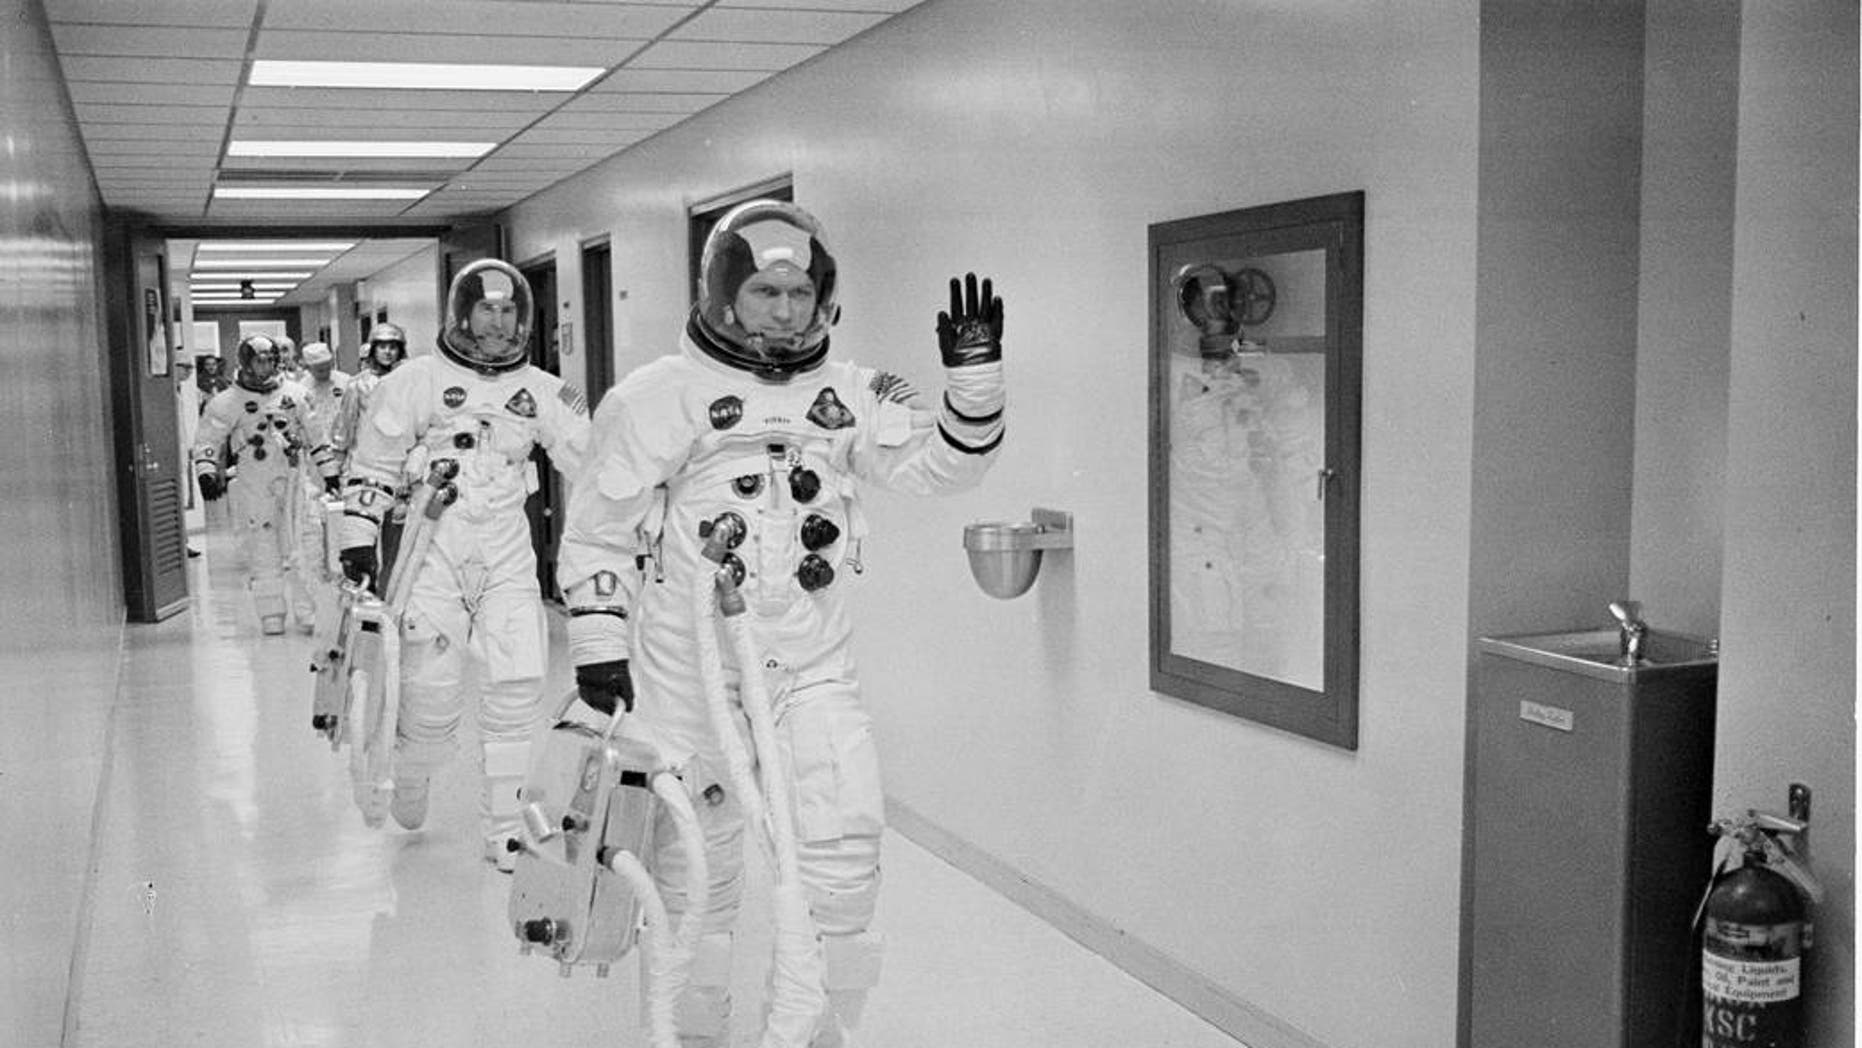 Apollo 8 Commander Colonel Frank Borman leads the way as he, Command Module Pilot Captain Jim Lovell, and Lunar Module Pilot Major Bill Anders head to the launch pad for humanity's maiden voyage around the moon and its first aboard the Saturn V vehicle.